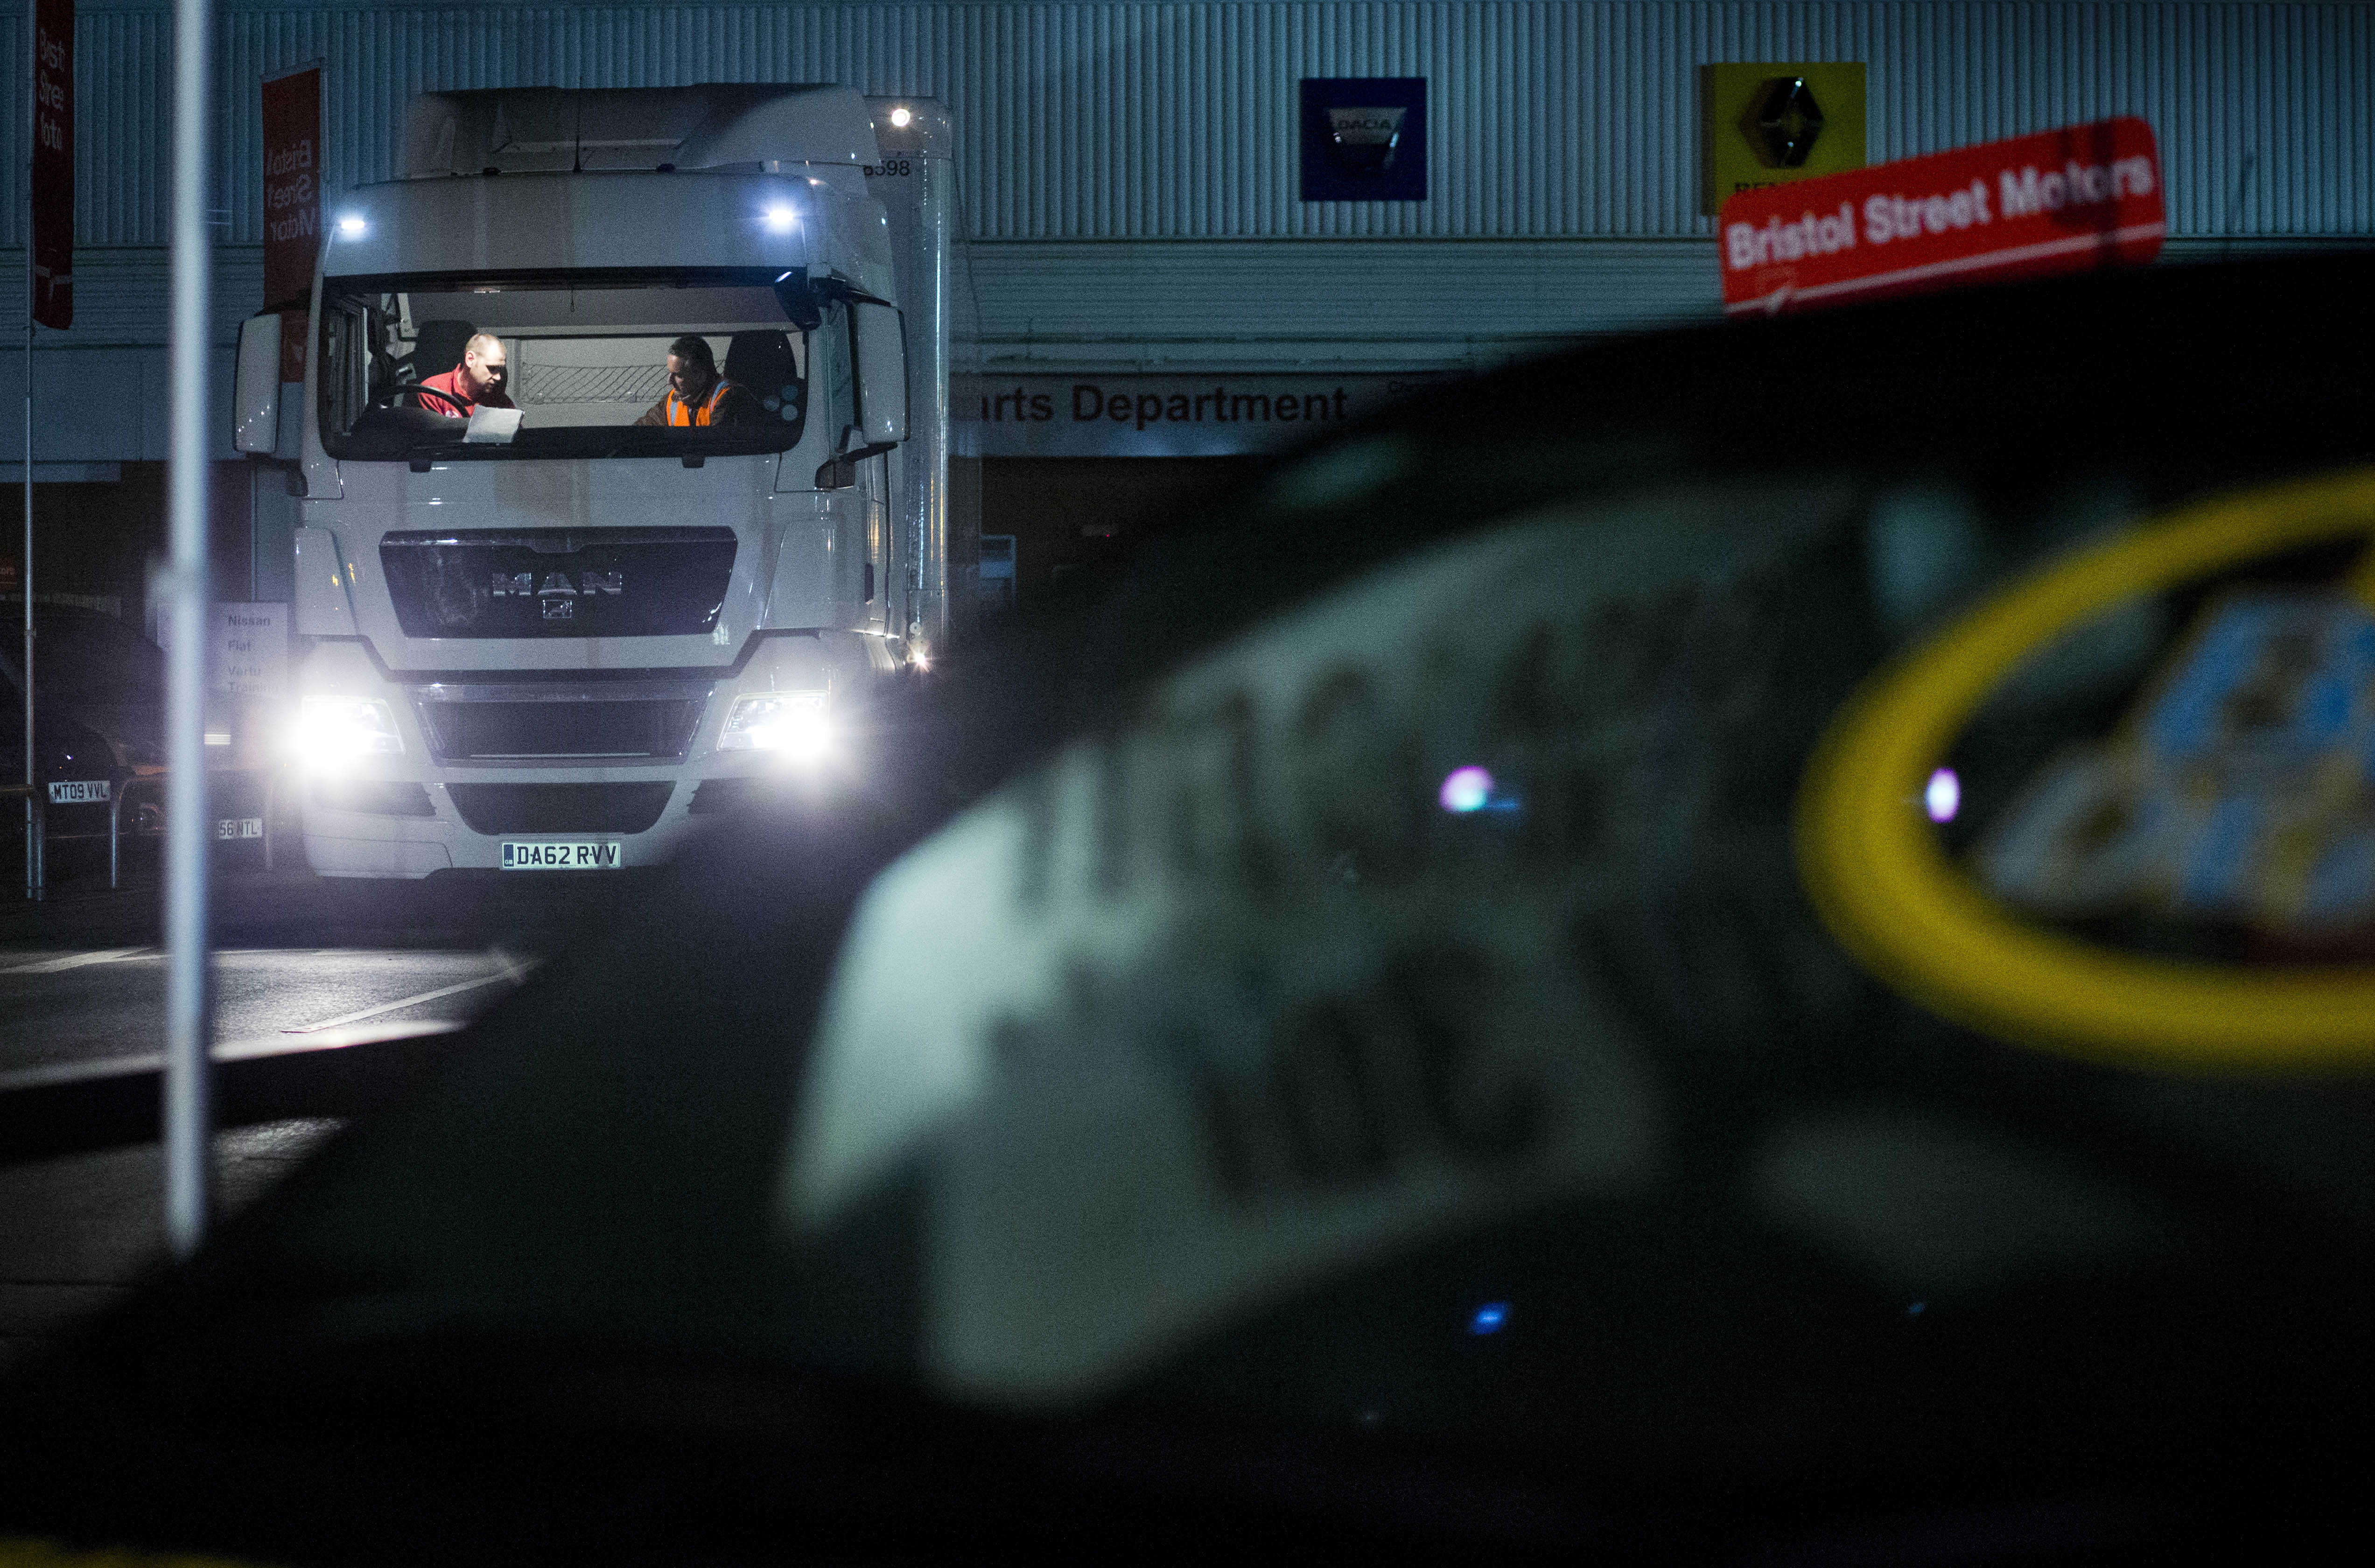 CEVA Logistics lorry preparing to go out on road at night